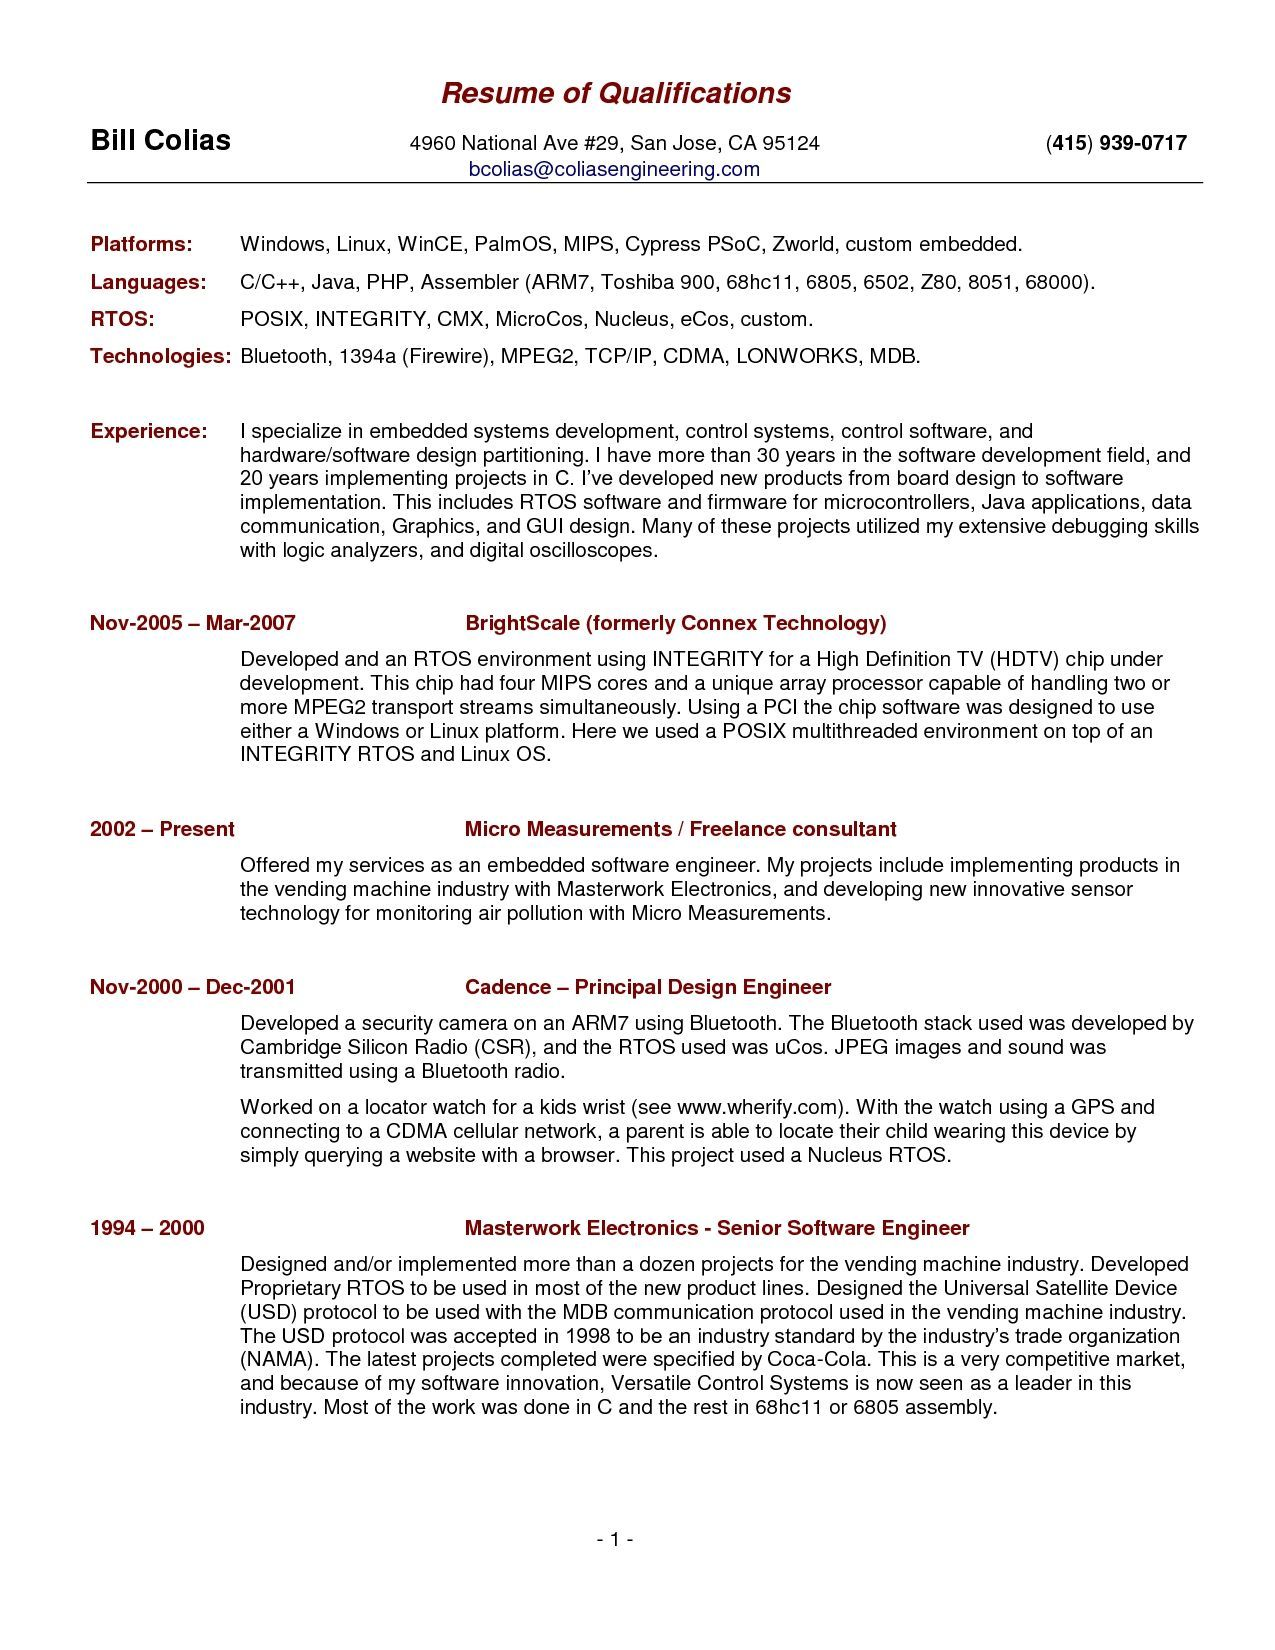 Resume Format Qualifications (With images) Resume examples